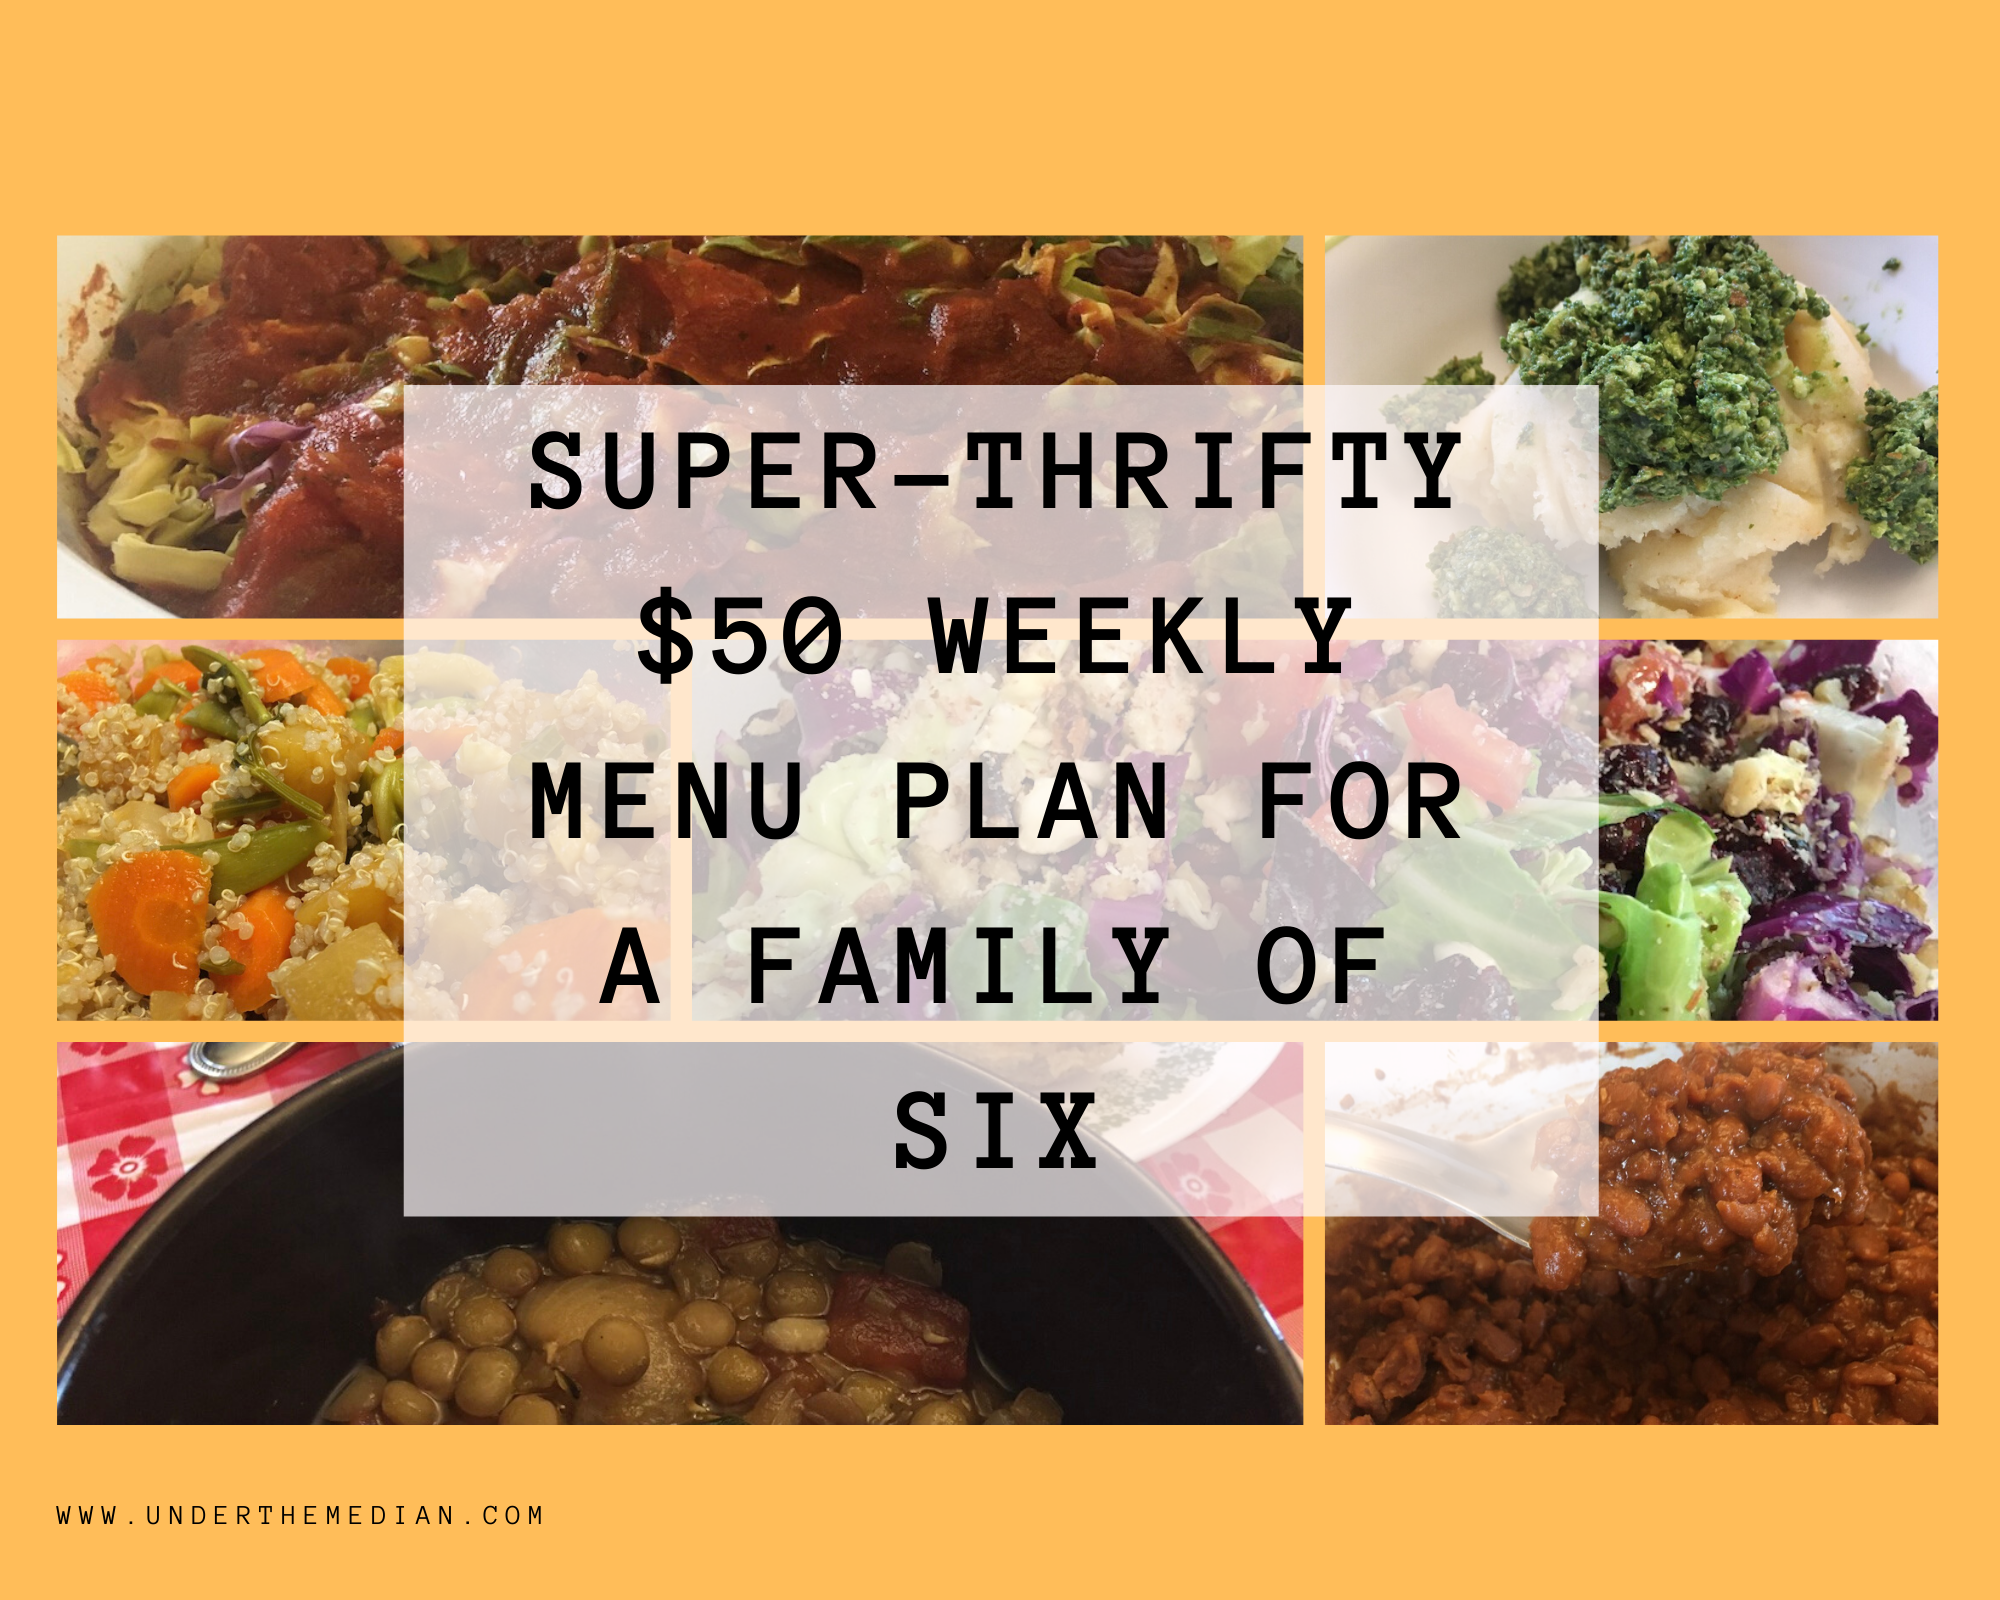 Super-Thrifty $50 Weekly Menu Plan for a Family of 6